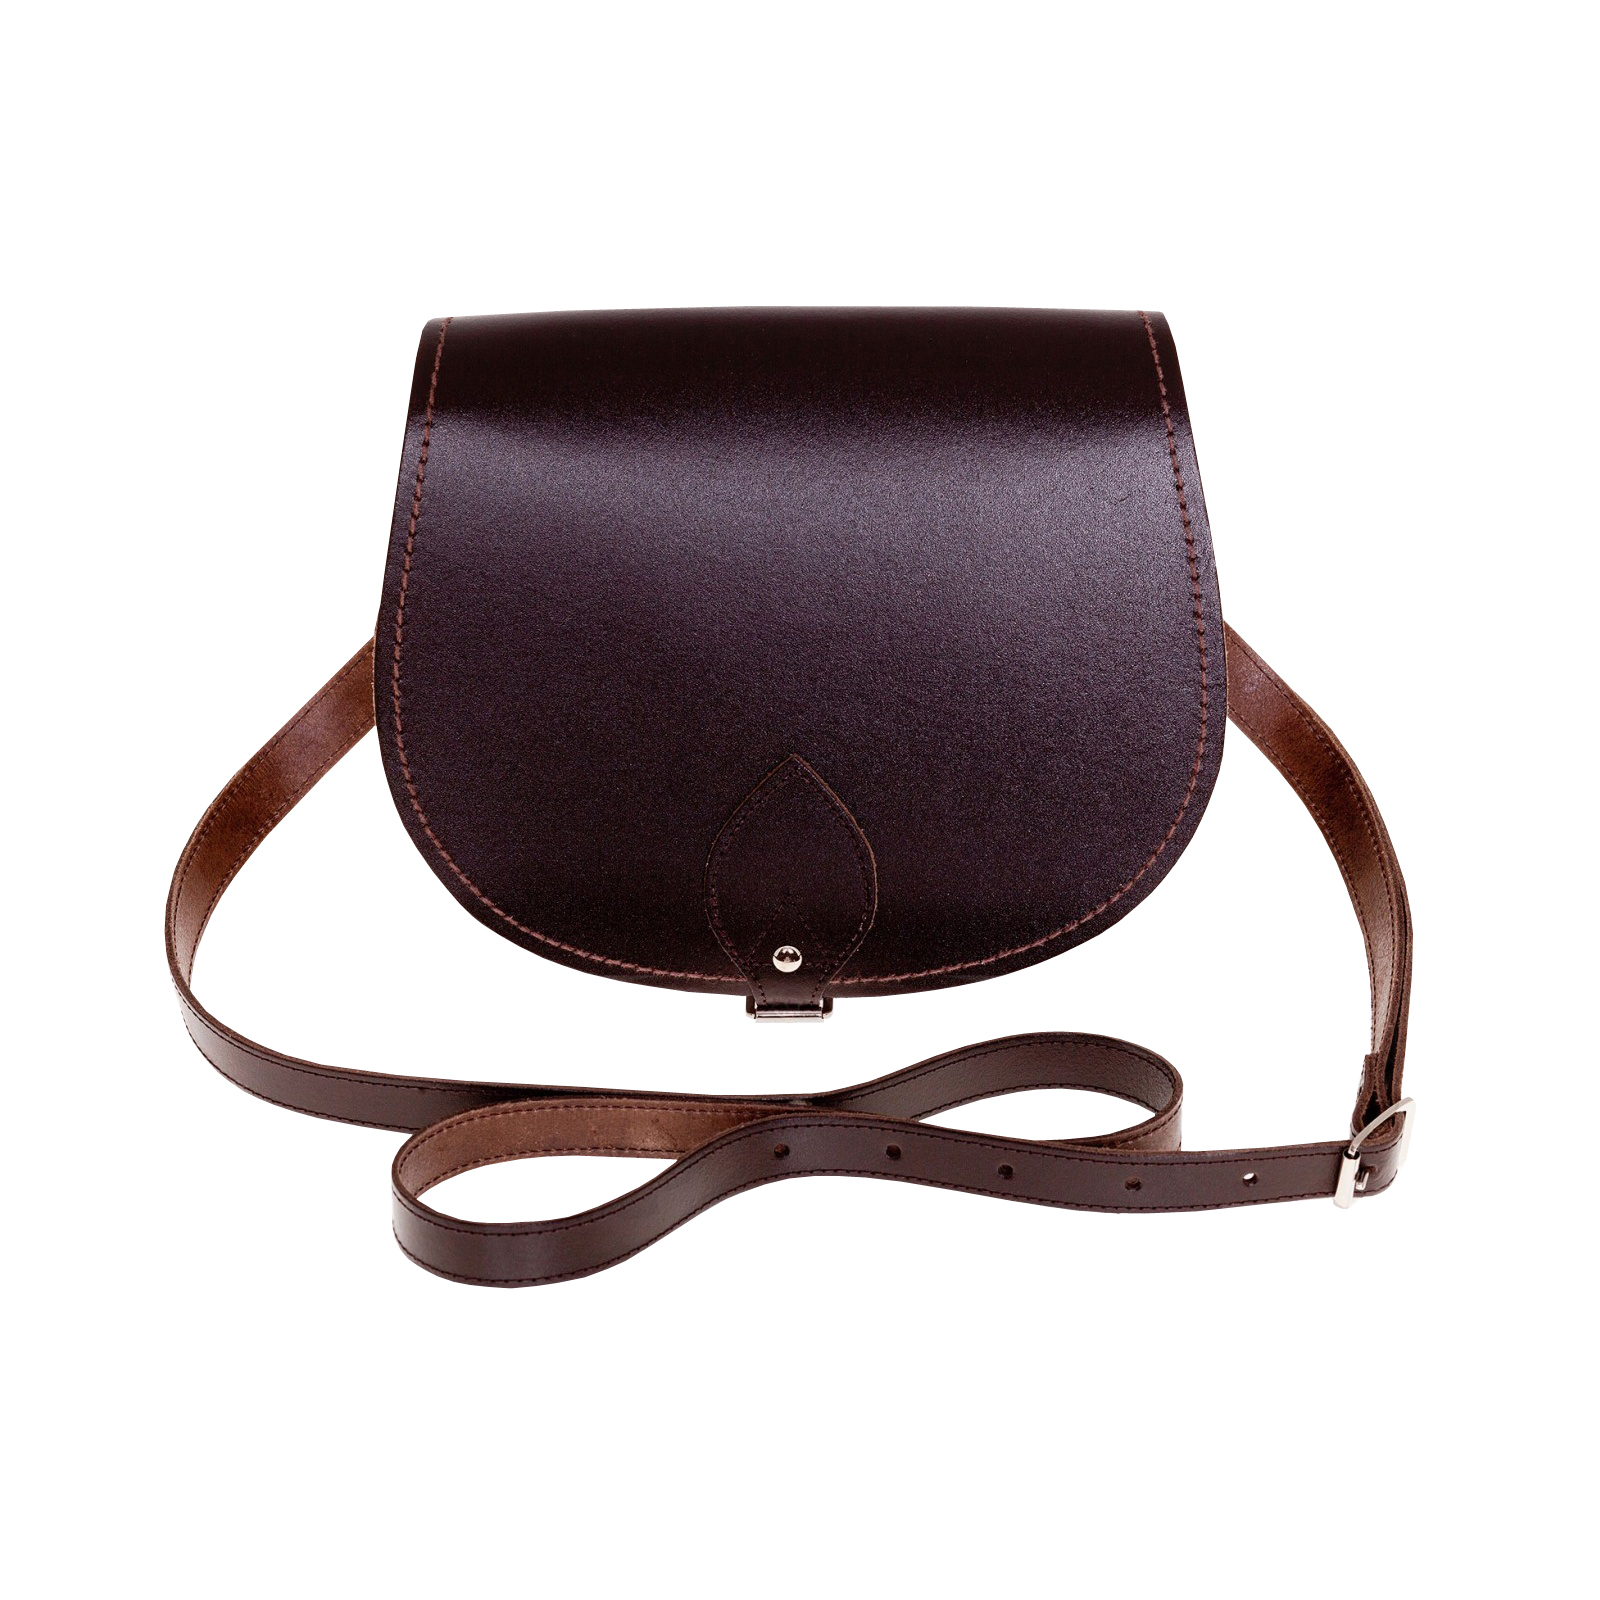 DESIGNER SADDLE BAGS, SADDLE BAG PURSES, AND LEATHER SADDLE BAGS. Complete your look with this season's wardrobe staple: designer saddle bags. Pretty and practical, saddle bag purses are the perfect size to carry all your going-out essentials.